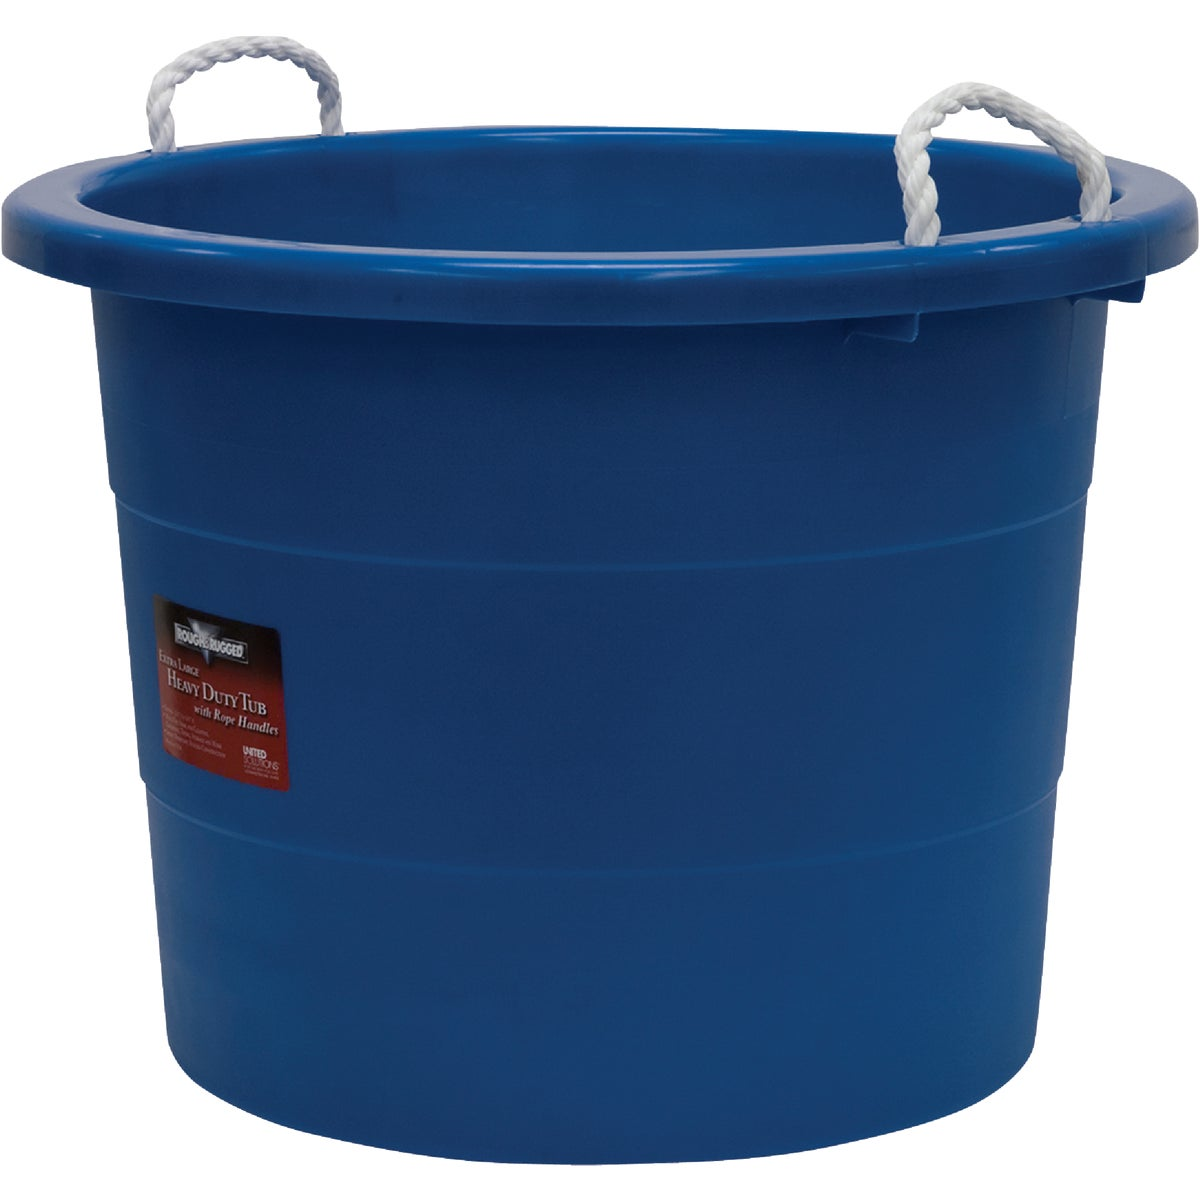 19GAL UTILITY TUB - TU0015 by United Solutions